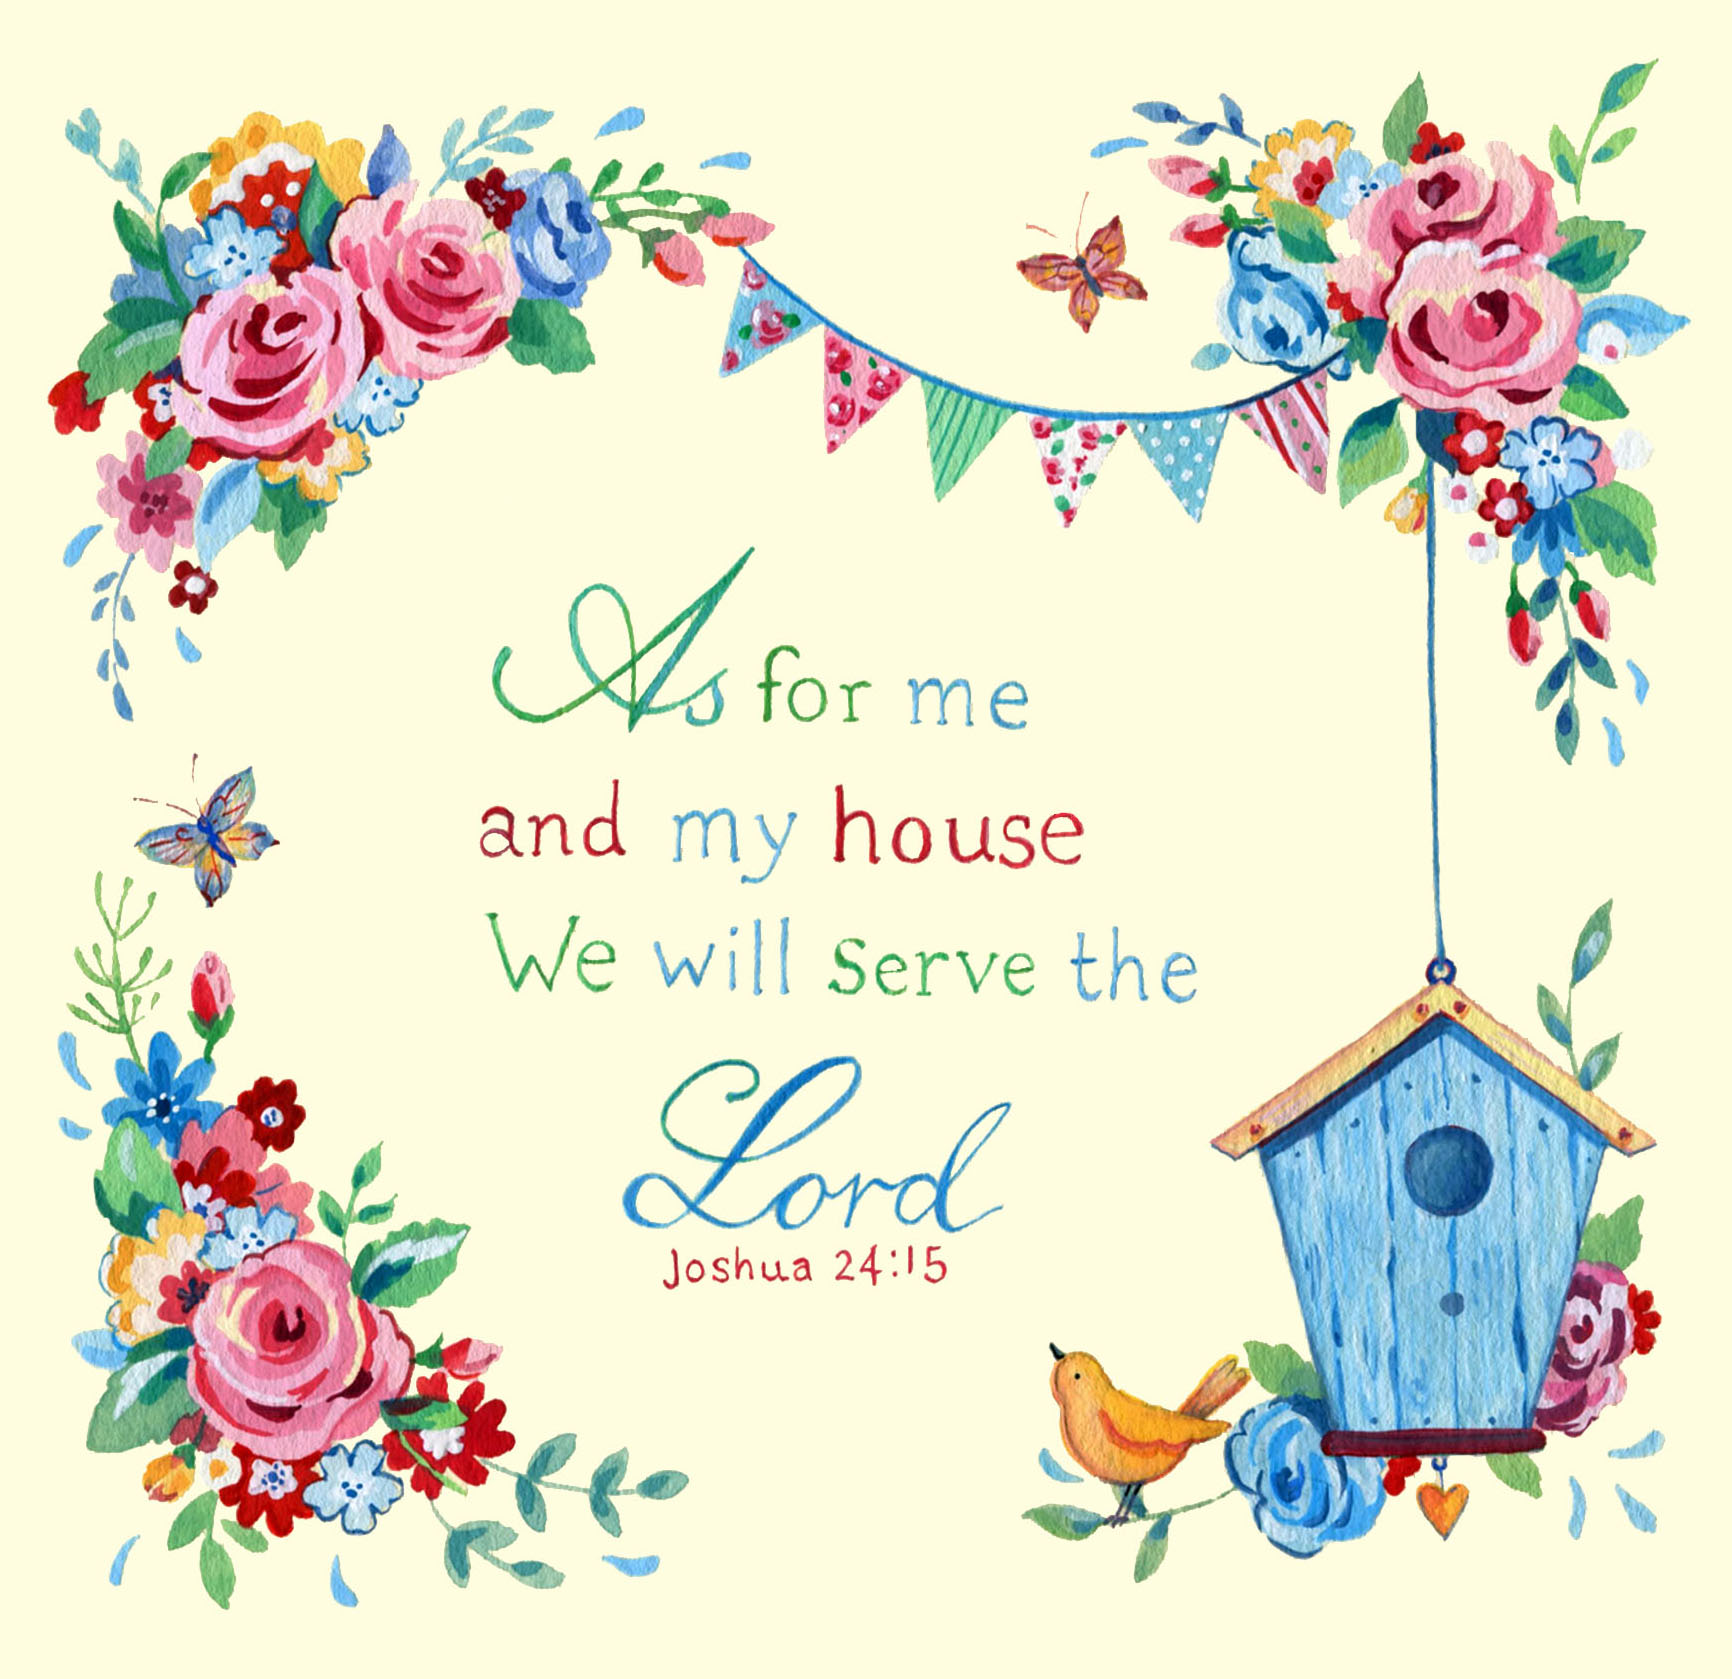 My Home 24 As For Me And My House Single Card: Free Delivery When You Spend £10 At Eden.co.uk